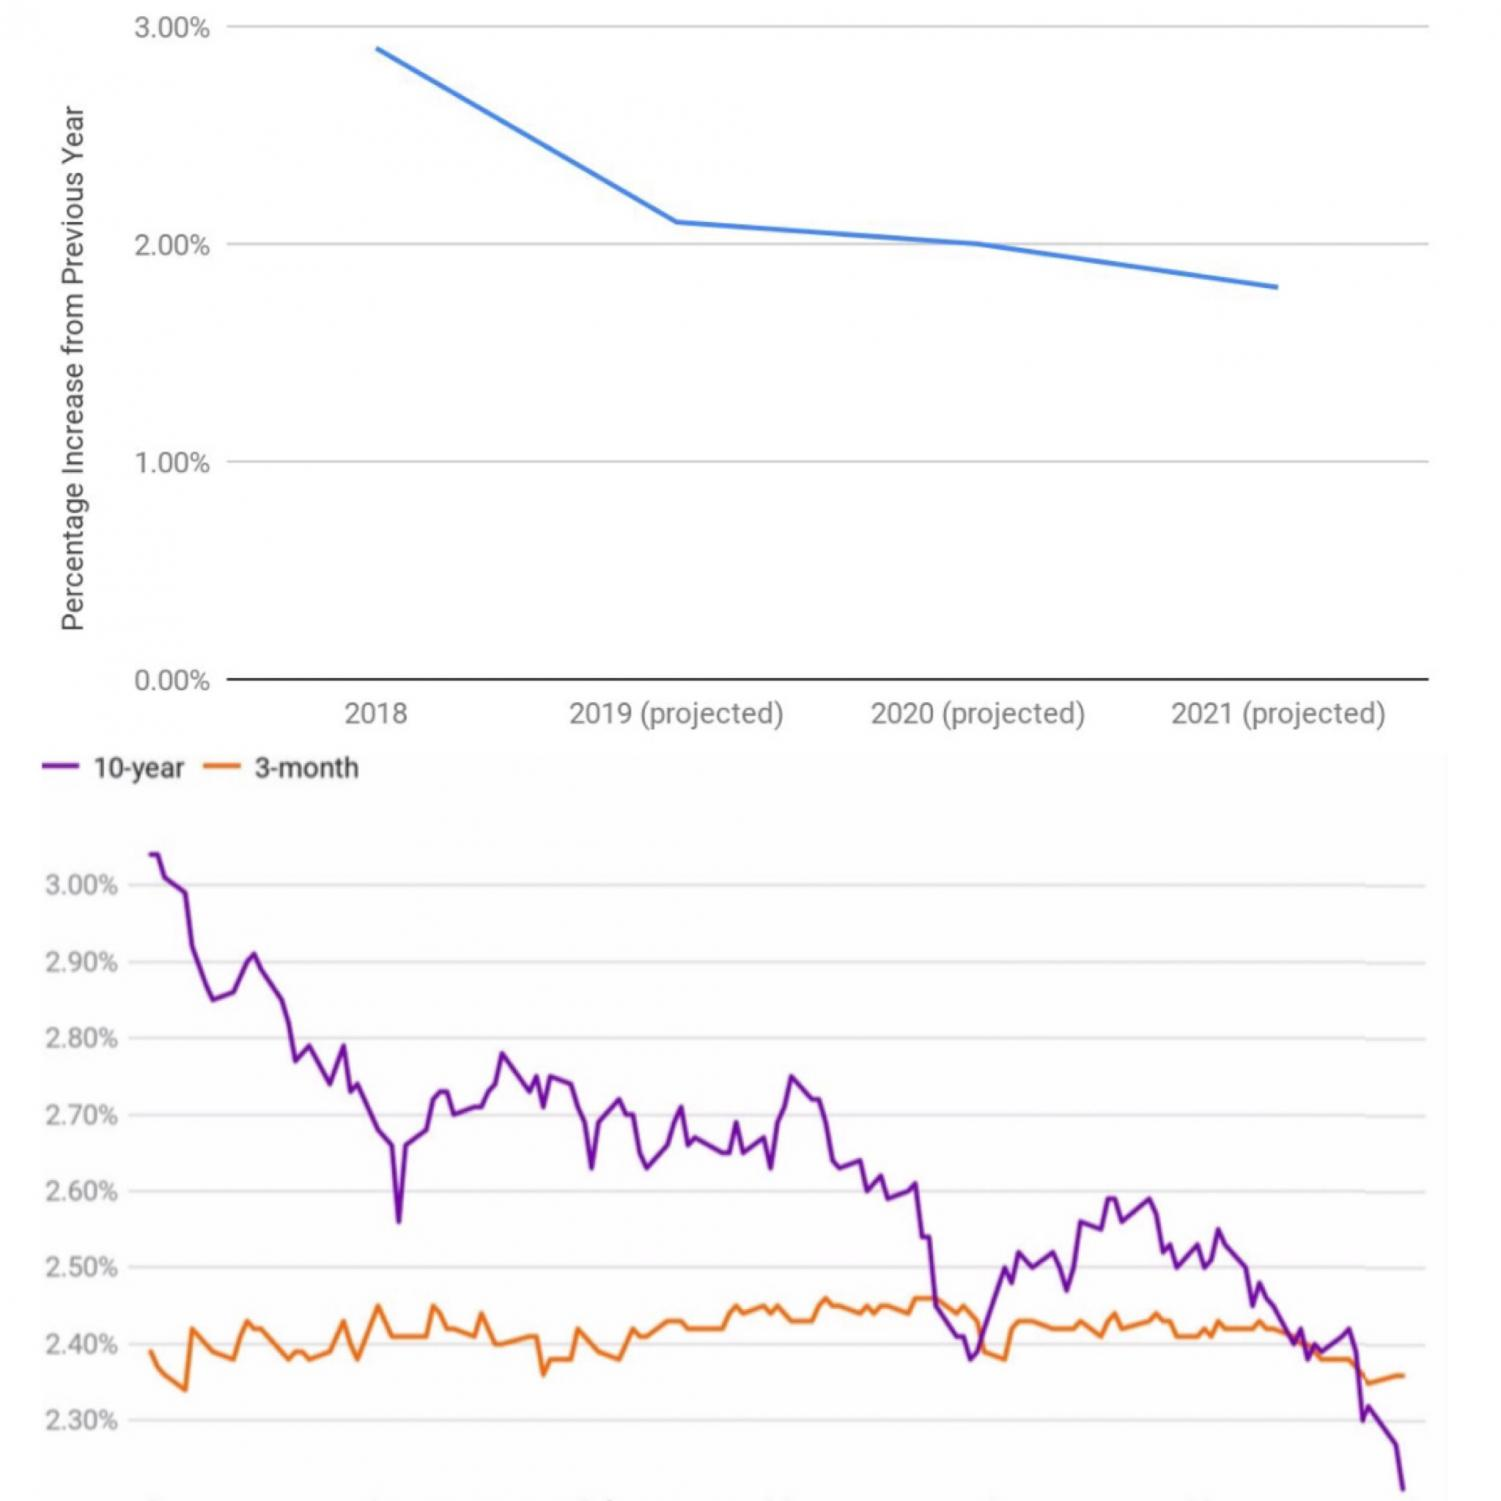 The above graphs predict current and projected  growth of the U.S. GDP by 2021 (top graph) and display the yield curve inversions between 10-year and 3-month investments over the past six months (bottom graph).